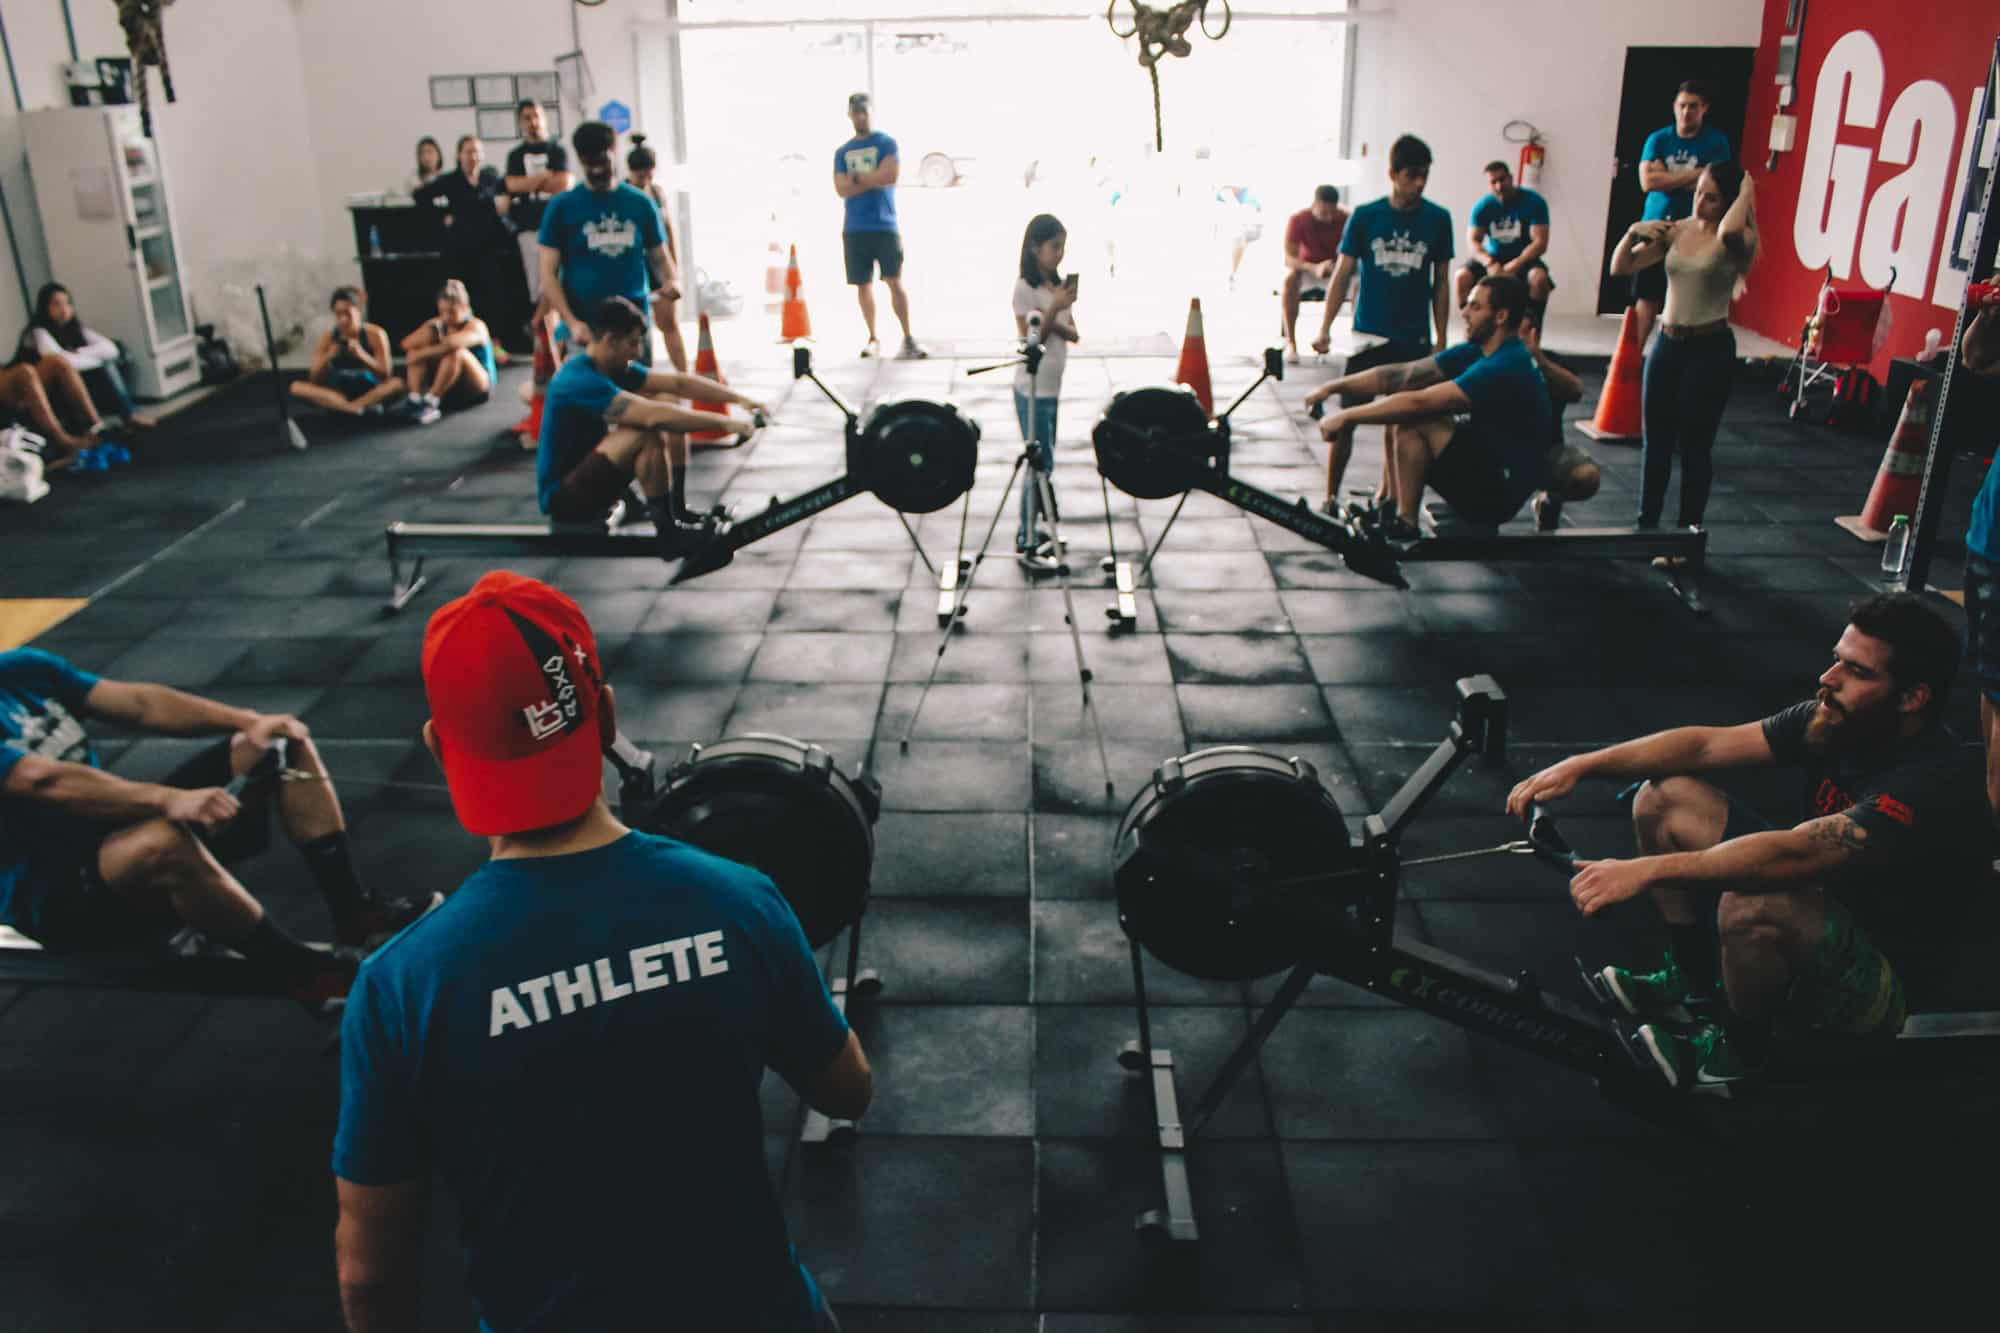 Guide to Indoor Rowing (EXCELLENT LOW IMPACT EXERCISE)